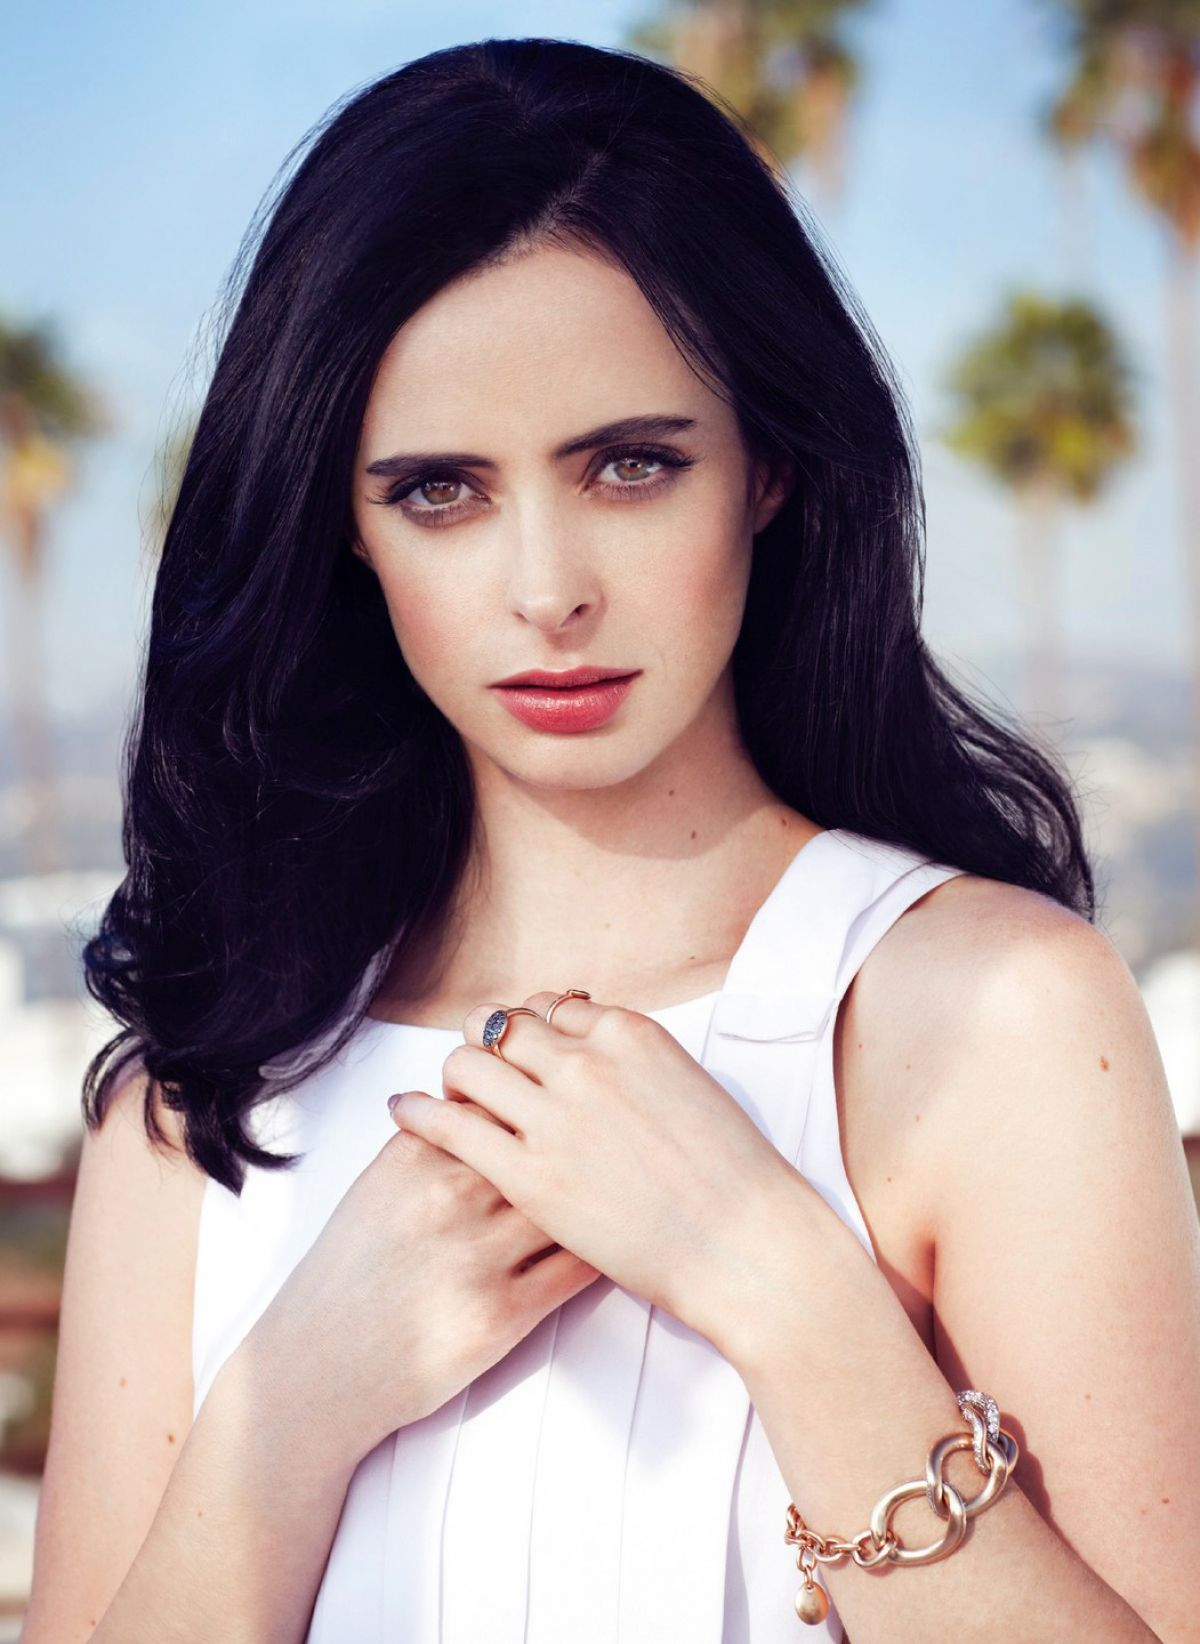 KRYSTEN RITTER in Glamour Magaznie, Mexico April 2016 ...